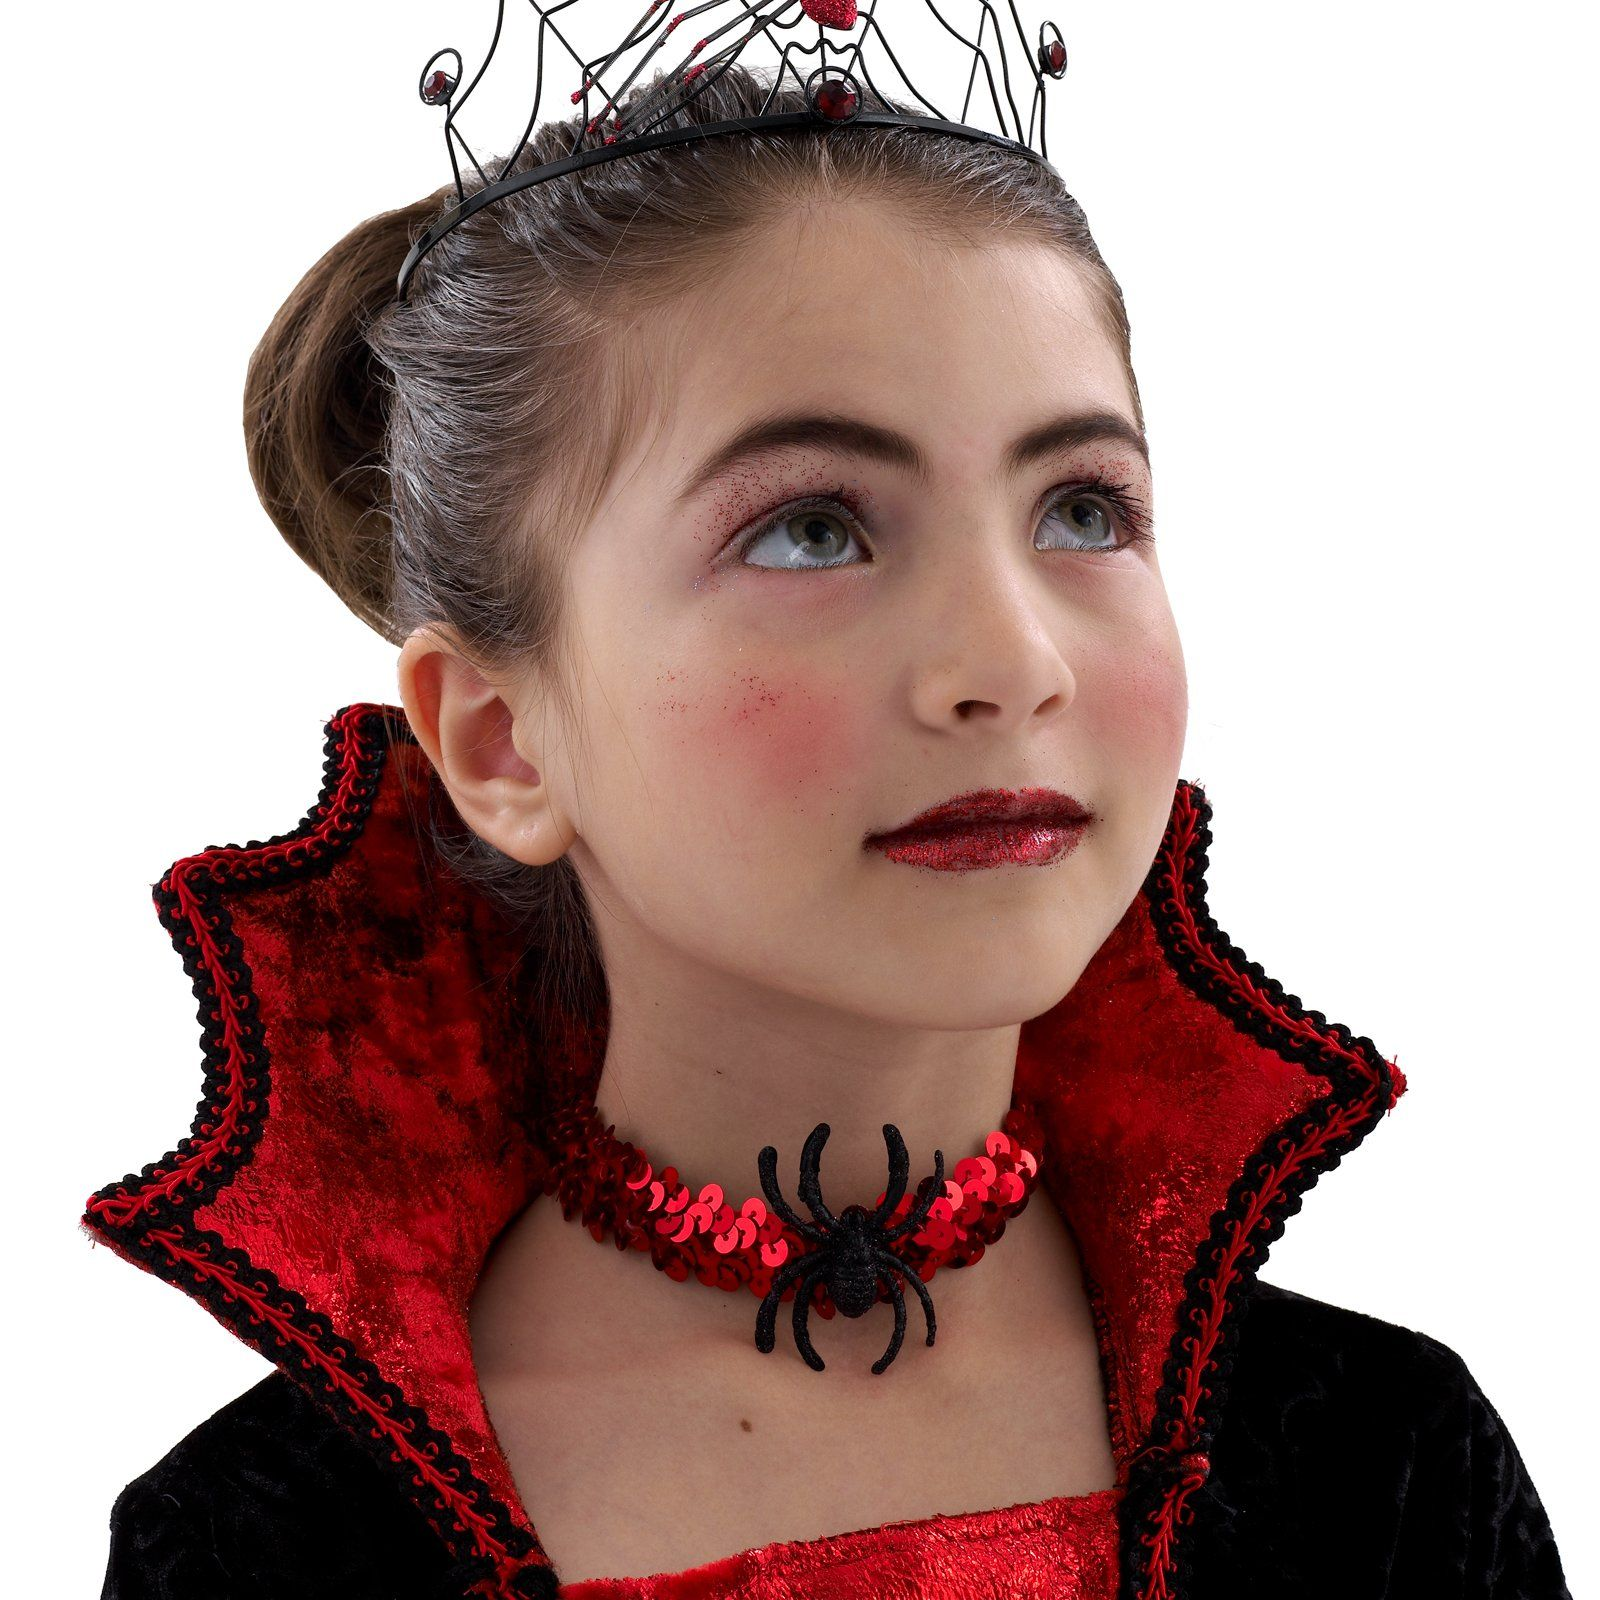 dracula child choker from halloween costume ideas for kaylie 2013 pinterest. Black Bedroom Furniture Sets. Home Design Ideas